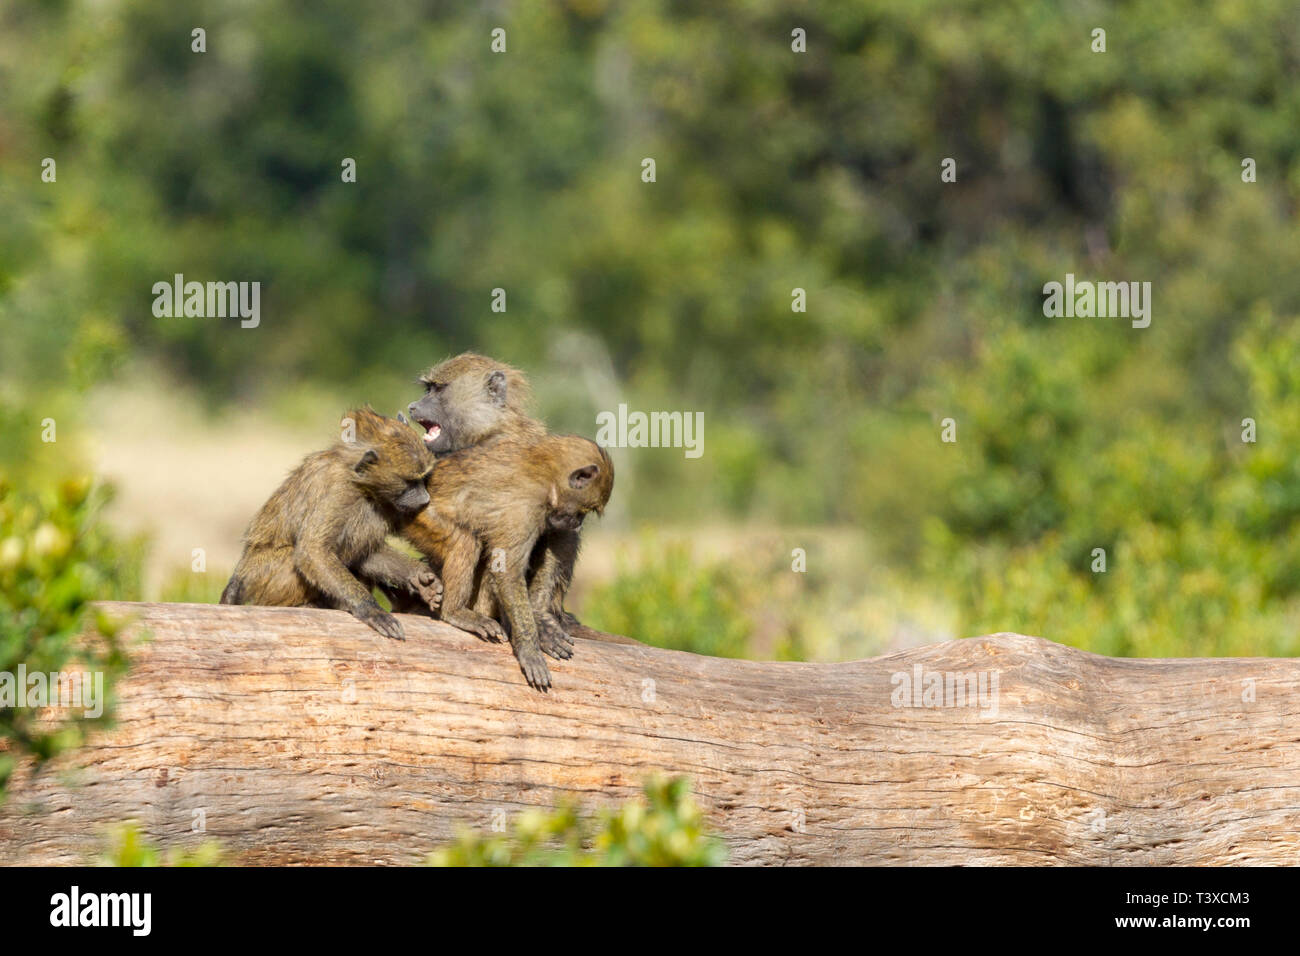 A small group of Olive baboons fighting on a fallen tree, landscape format, Ol Pejeta Conservancy, Laikipia, Kenya, Africa Stock Photo